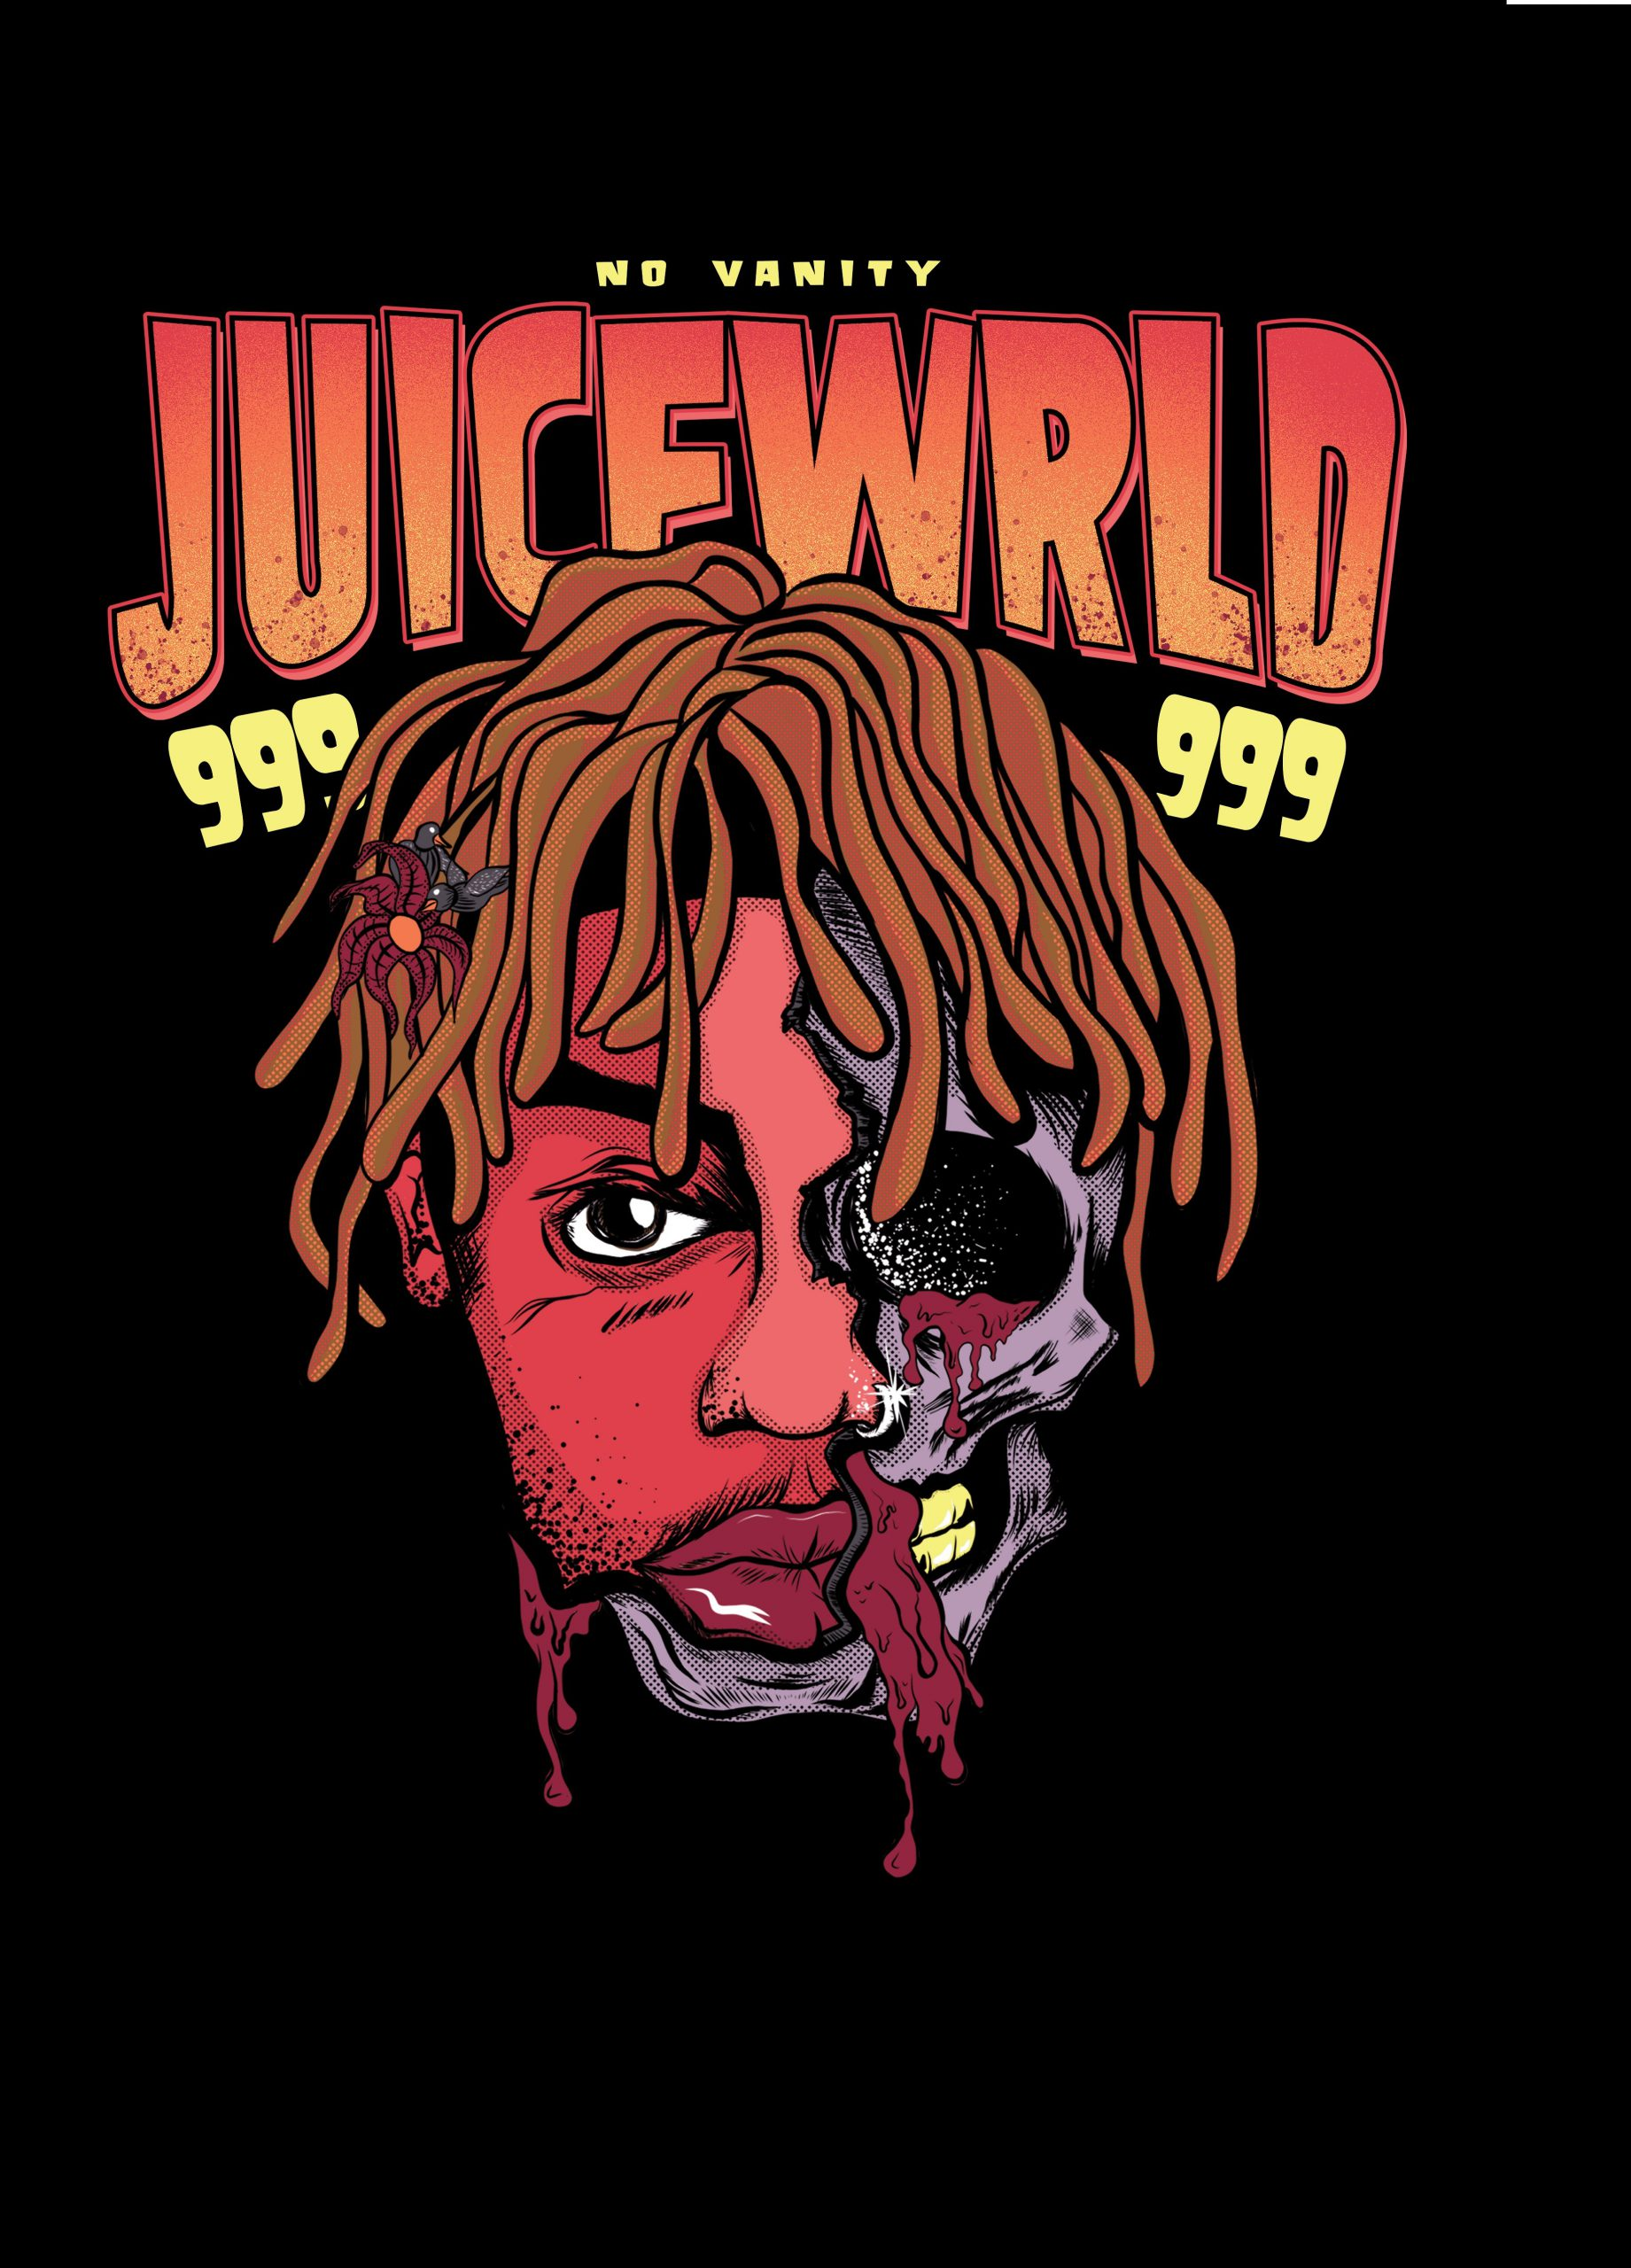 Juice Wrld Wallpaper Kolpaper Awesome Free Hd Wallpapers